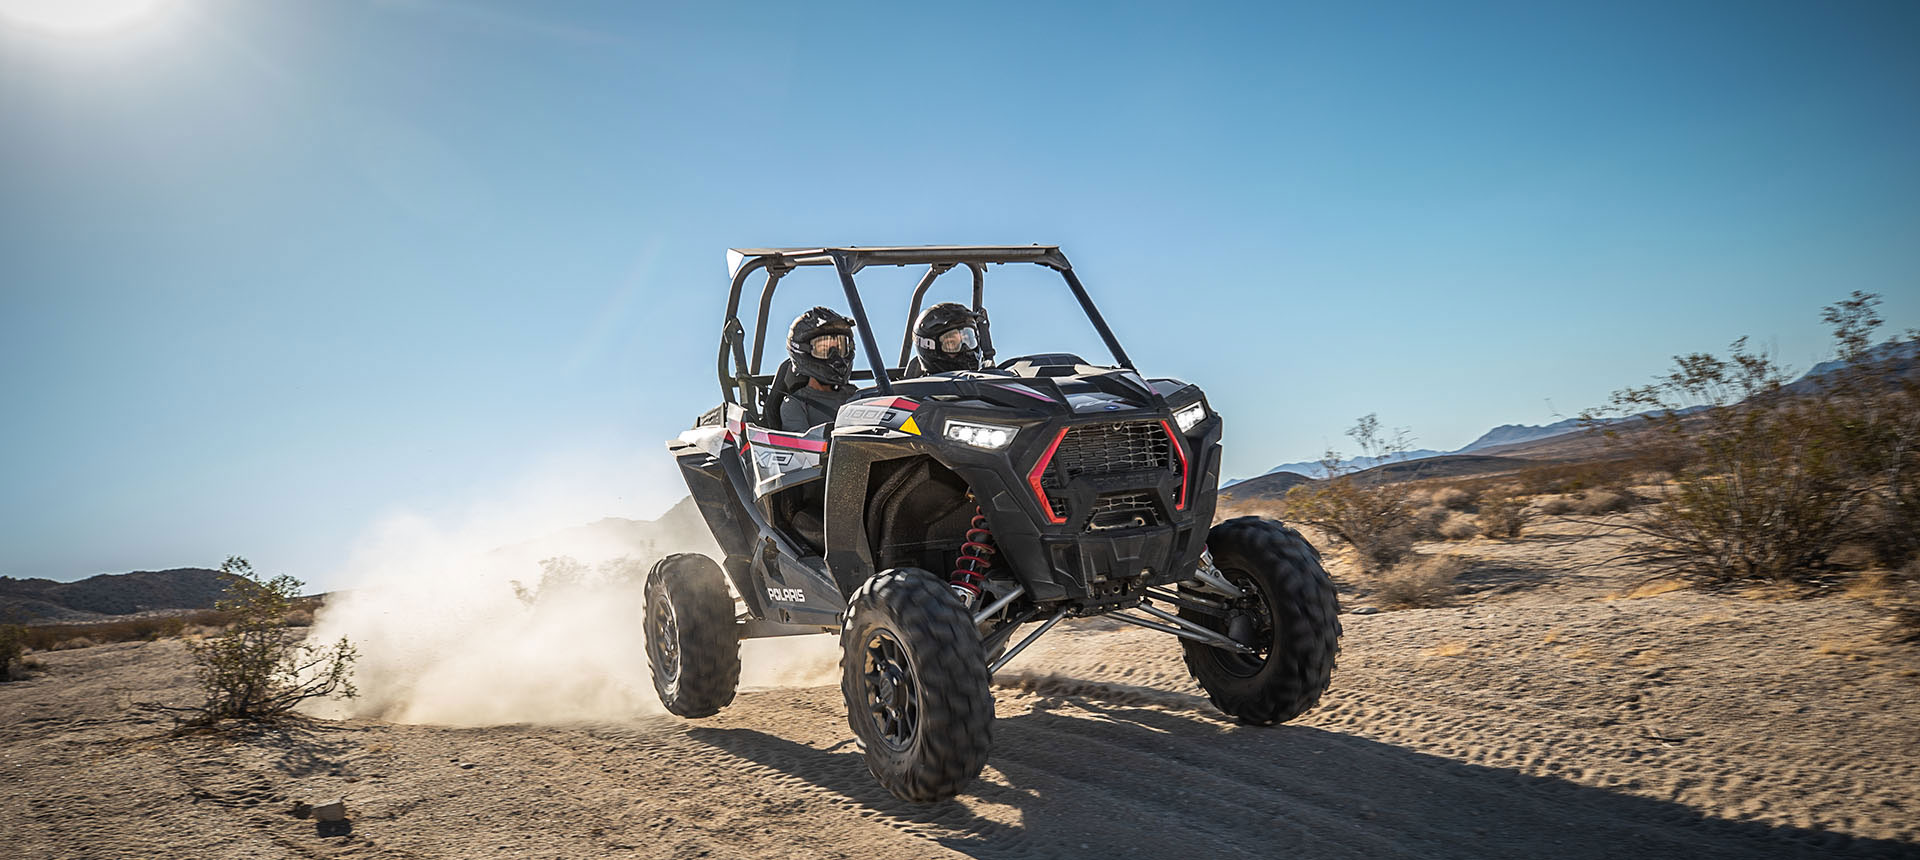 2019 Polaris RZR XP 1000 in Logan, Utah - Photo 8